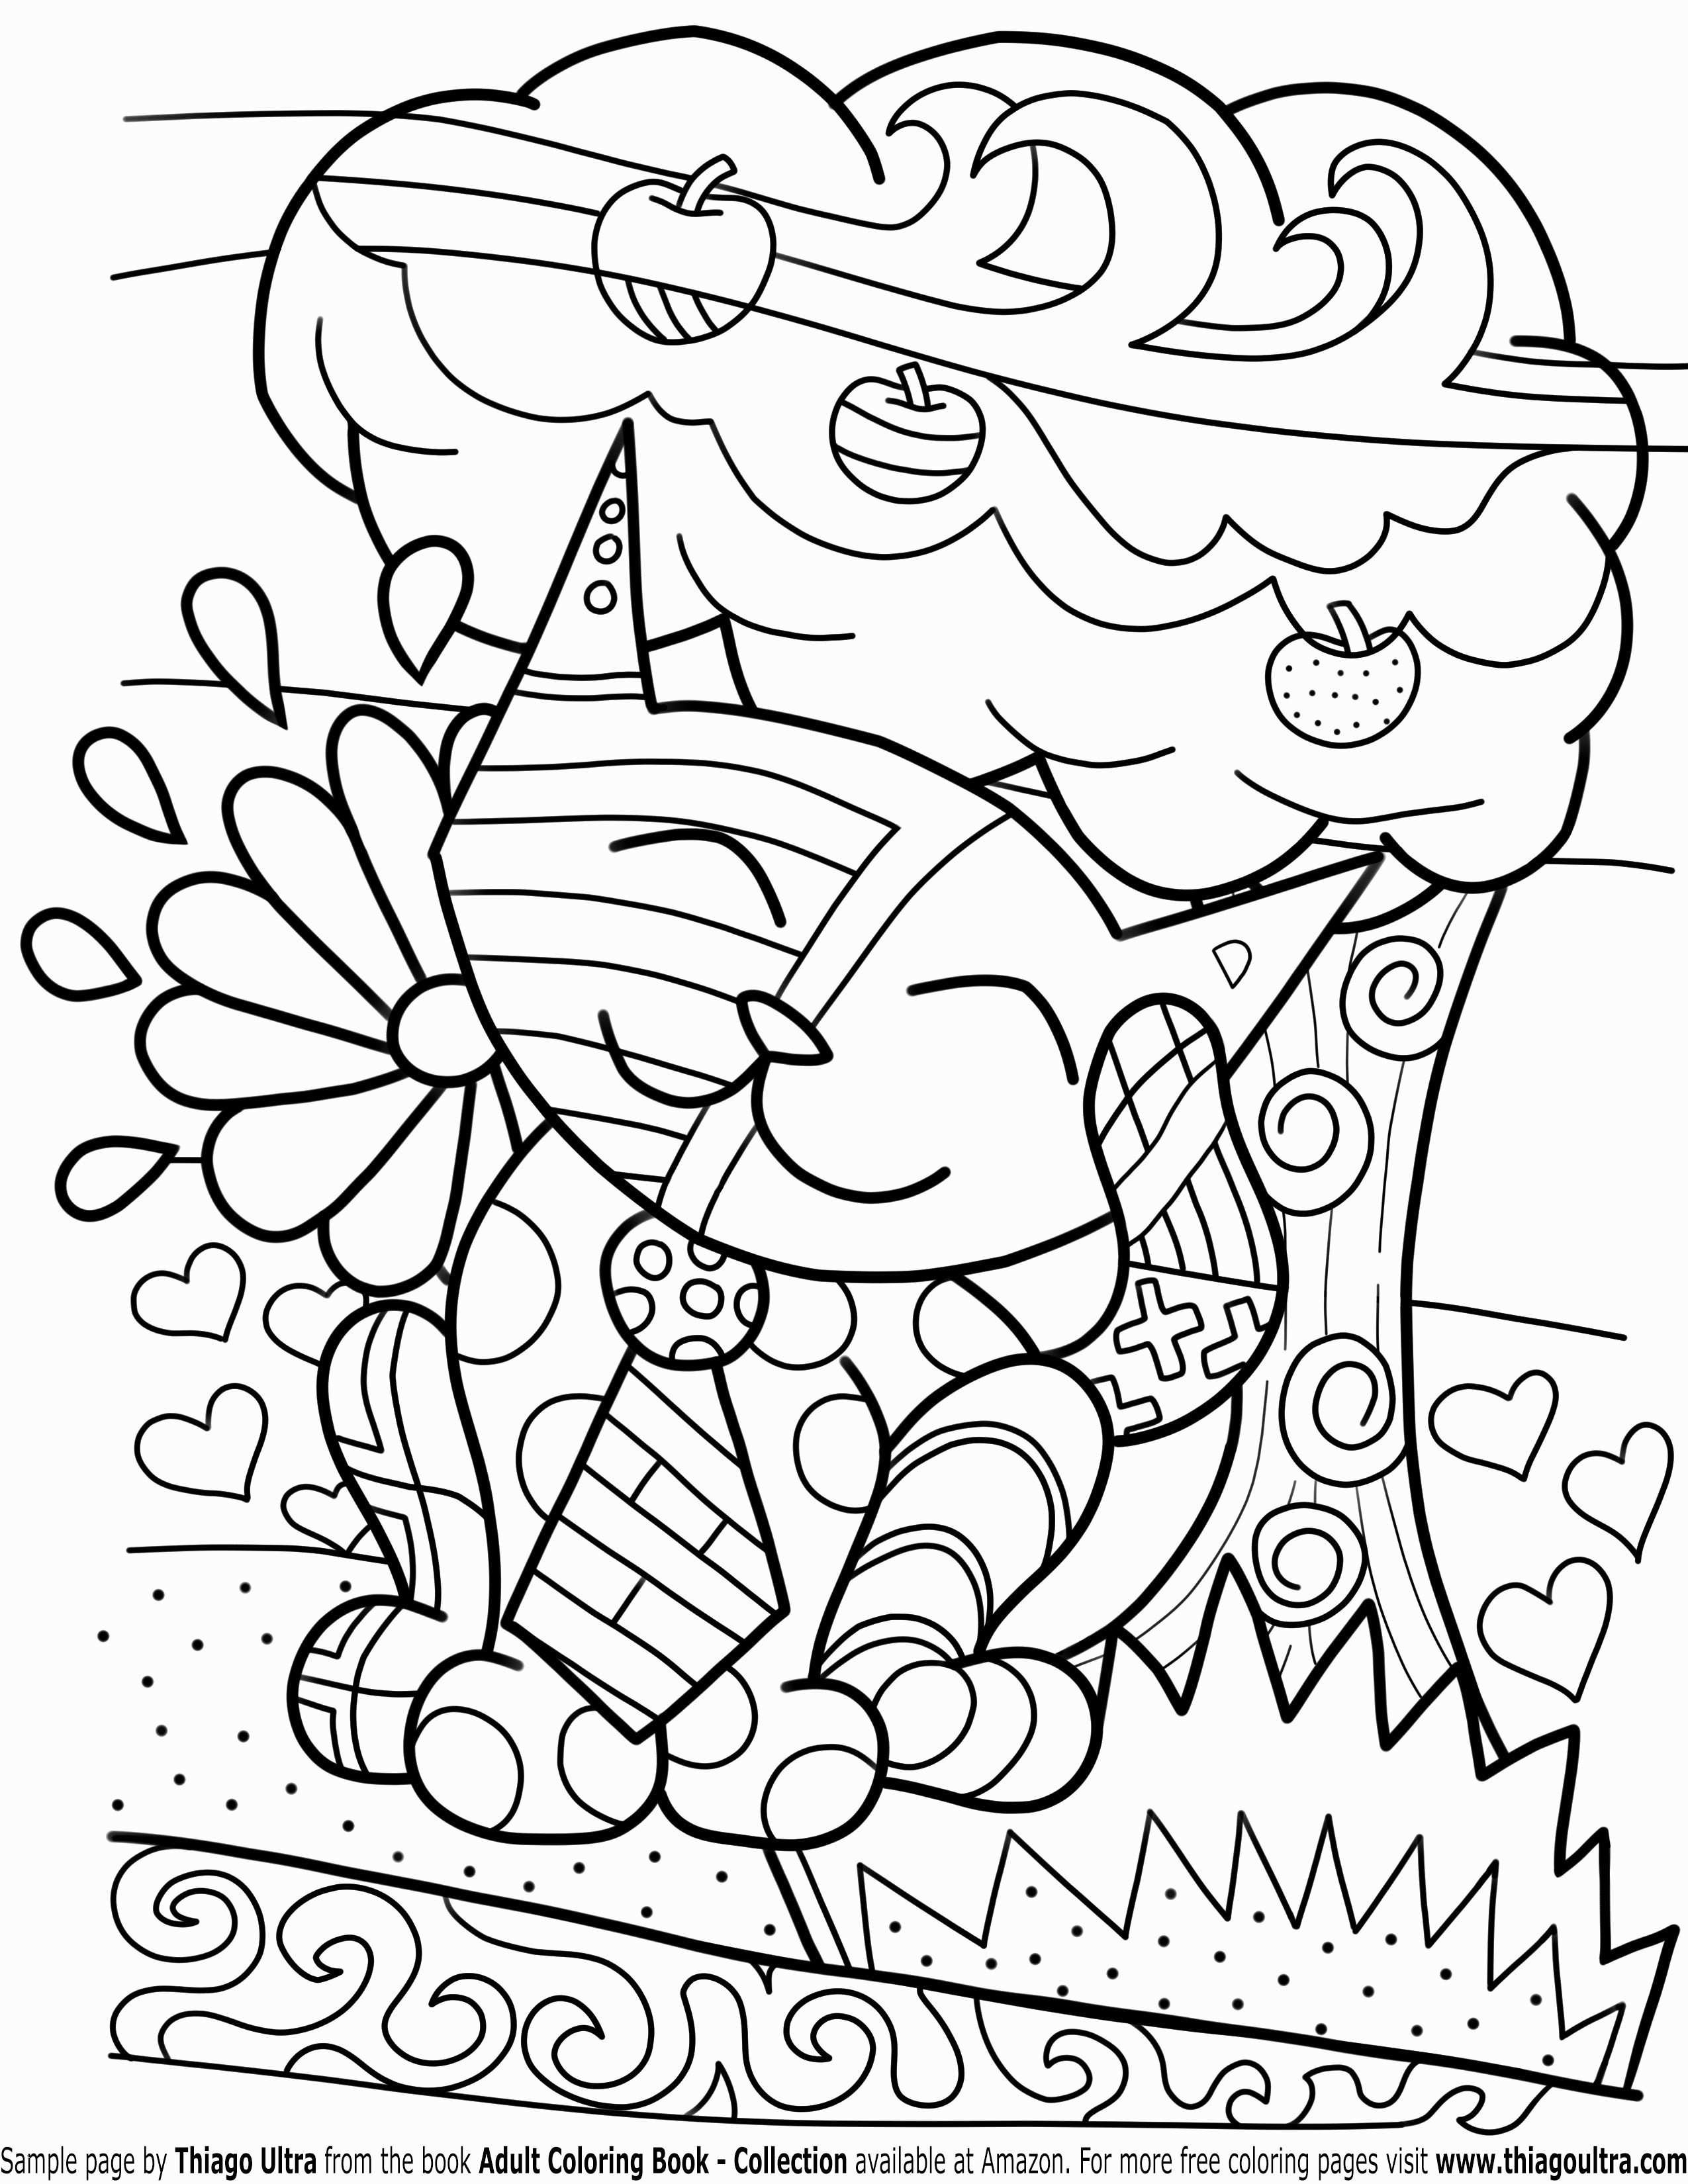 Winx Club Ausmalbilder Einzigartig Winx Coloring Pages Printable Beautiful Winx Club Coloring Pages Bild